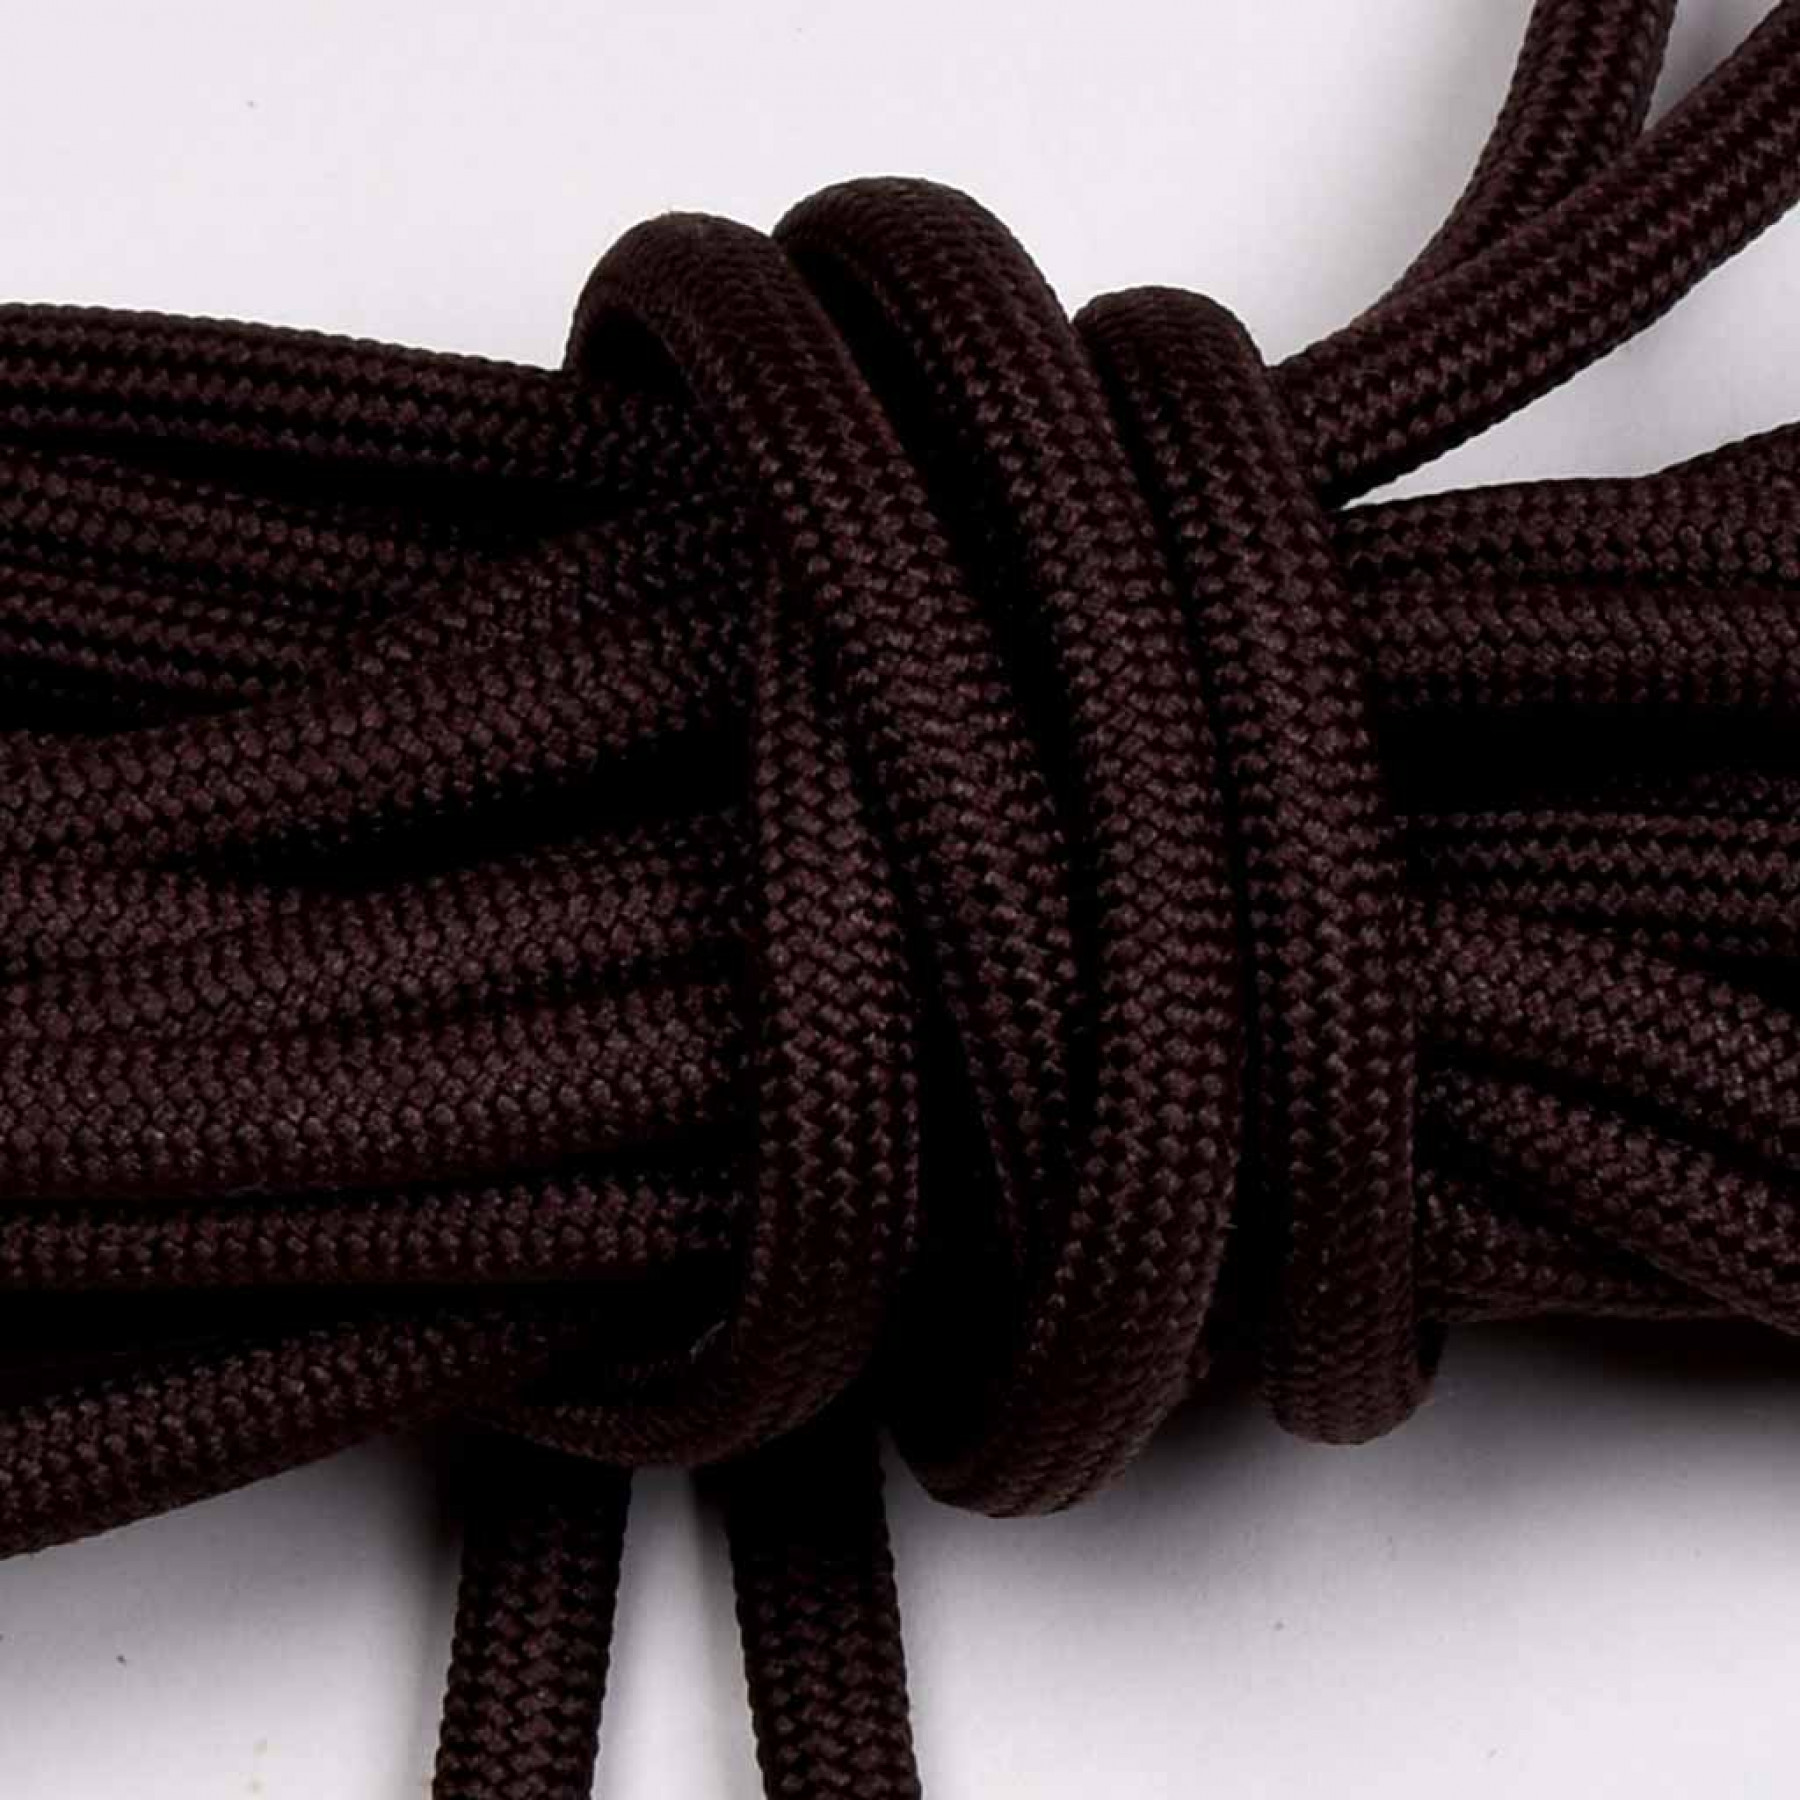 Laces, 165cm long, brown